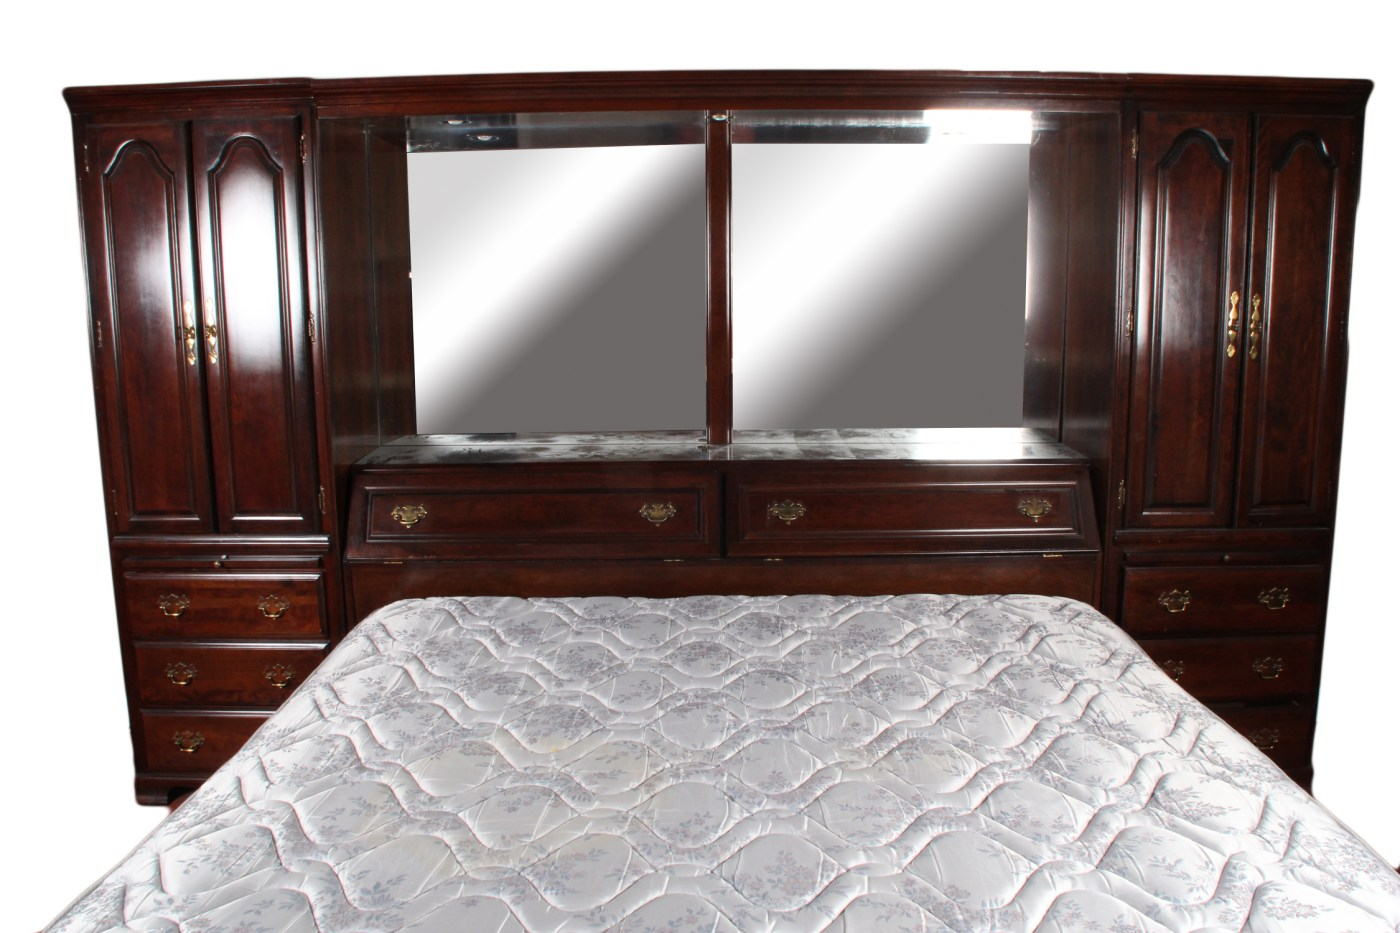 Mirrored Mahogany King Size Cabinet Bed EBTH